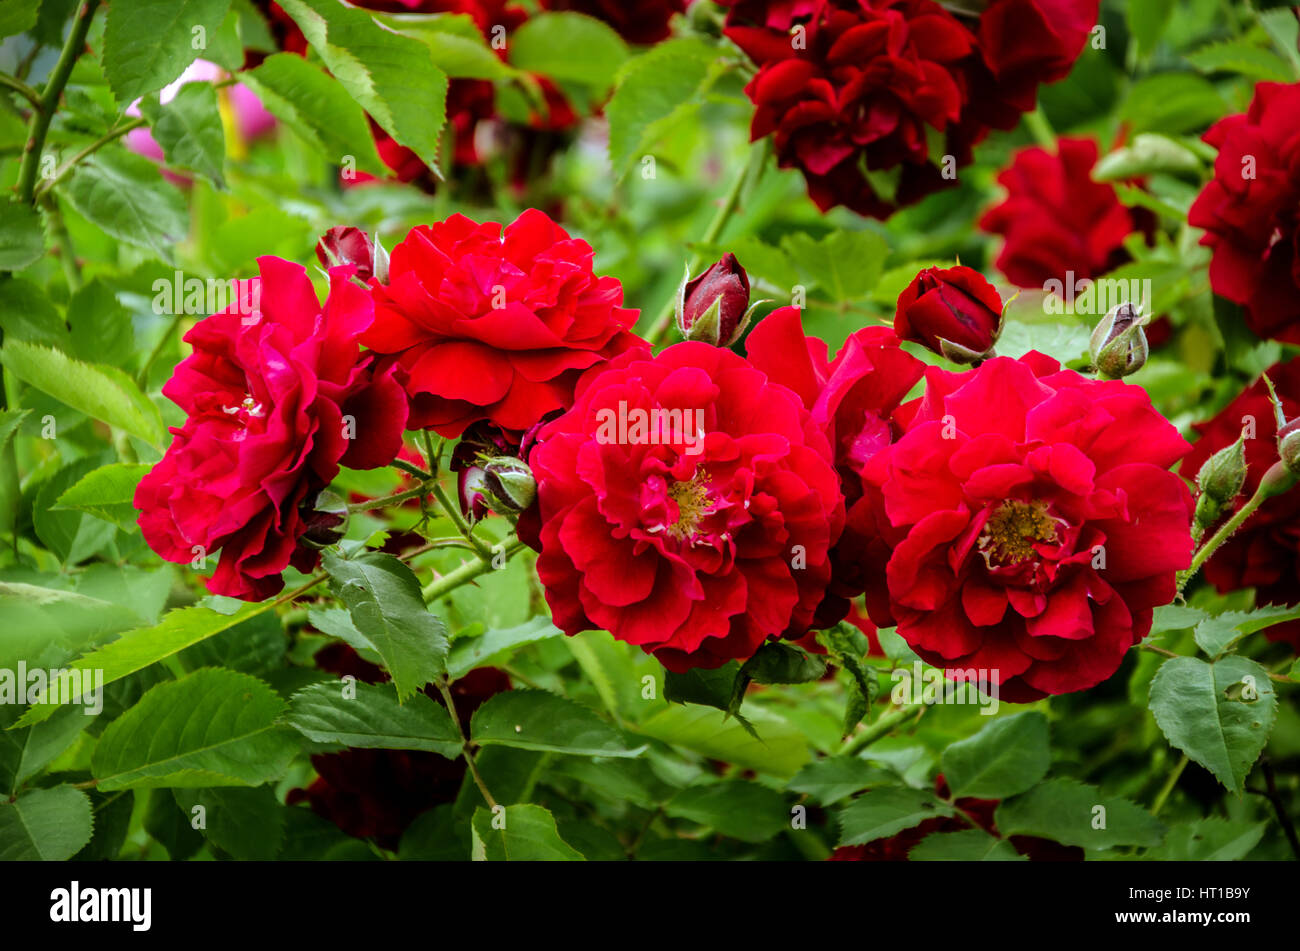 Beautiful rose bush unusual spots with red flowers and green leaves beautiful rose bush unusual spots with red flowers and green leaves izmirmasajfo